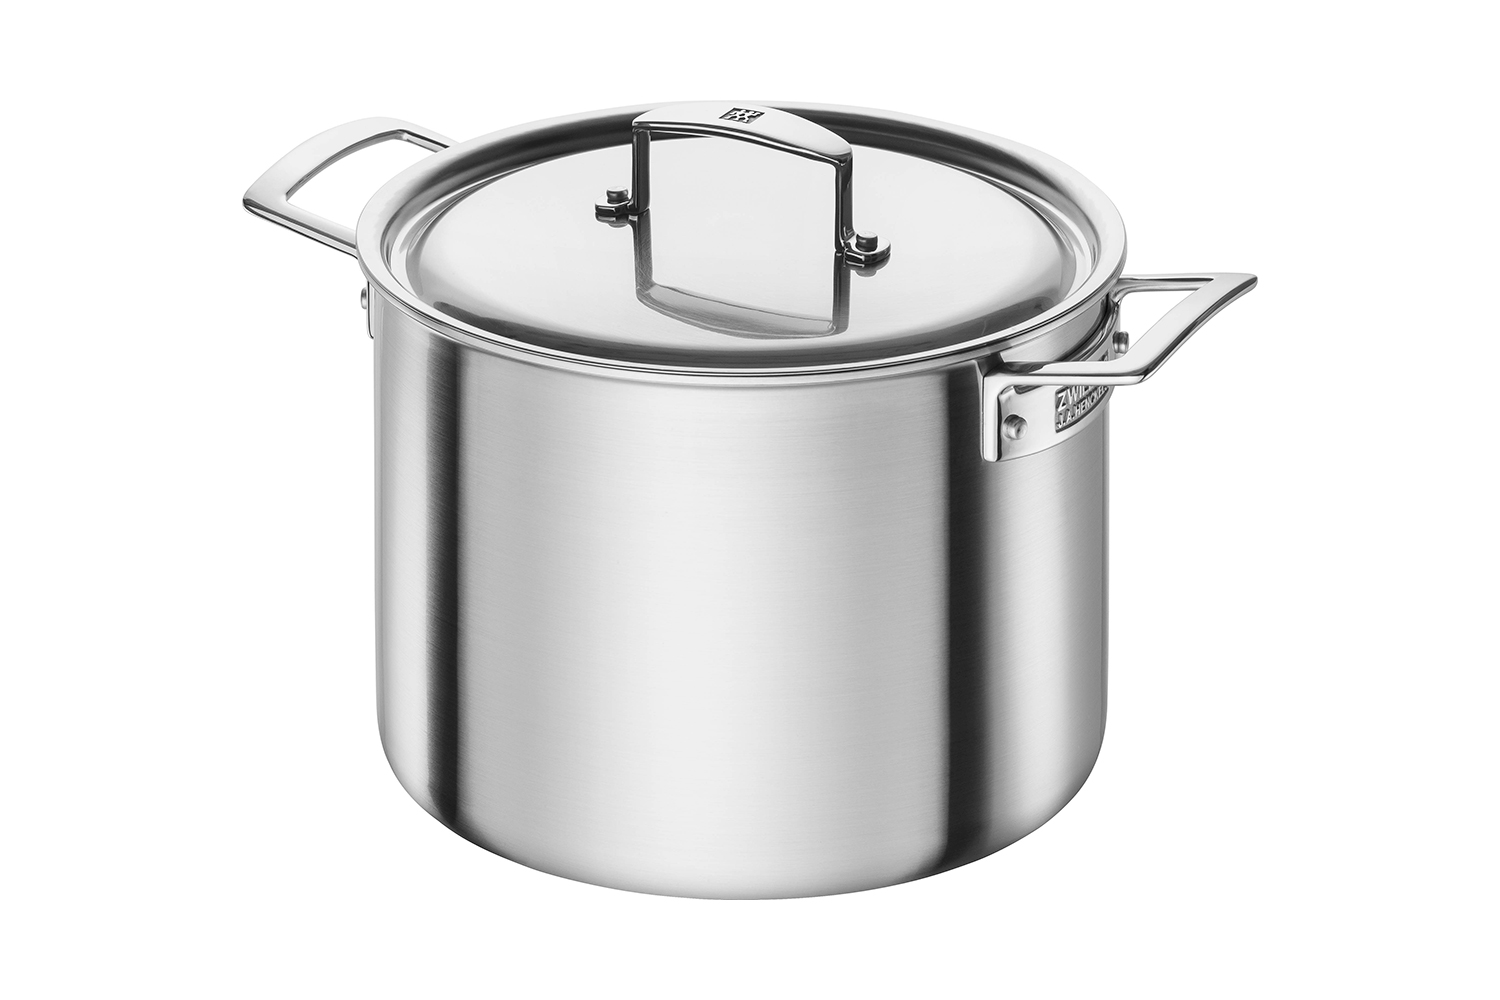 Zwilling J.A. Aurora 5-Ply Stainless Steel 8 qt. Stock Pot w/Lid